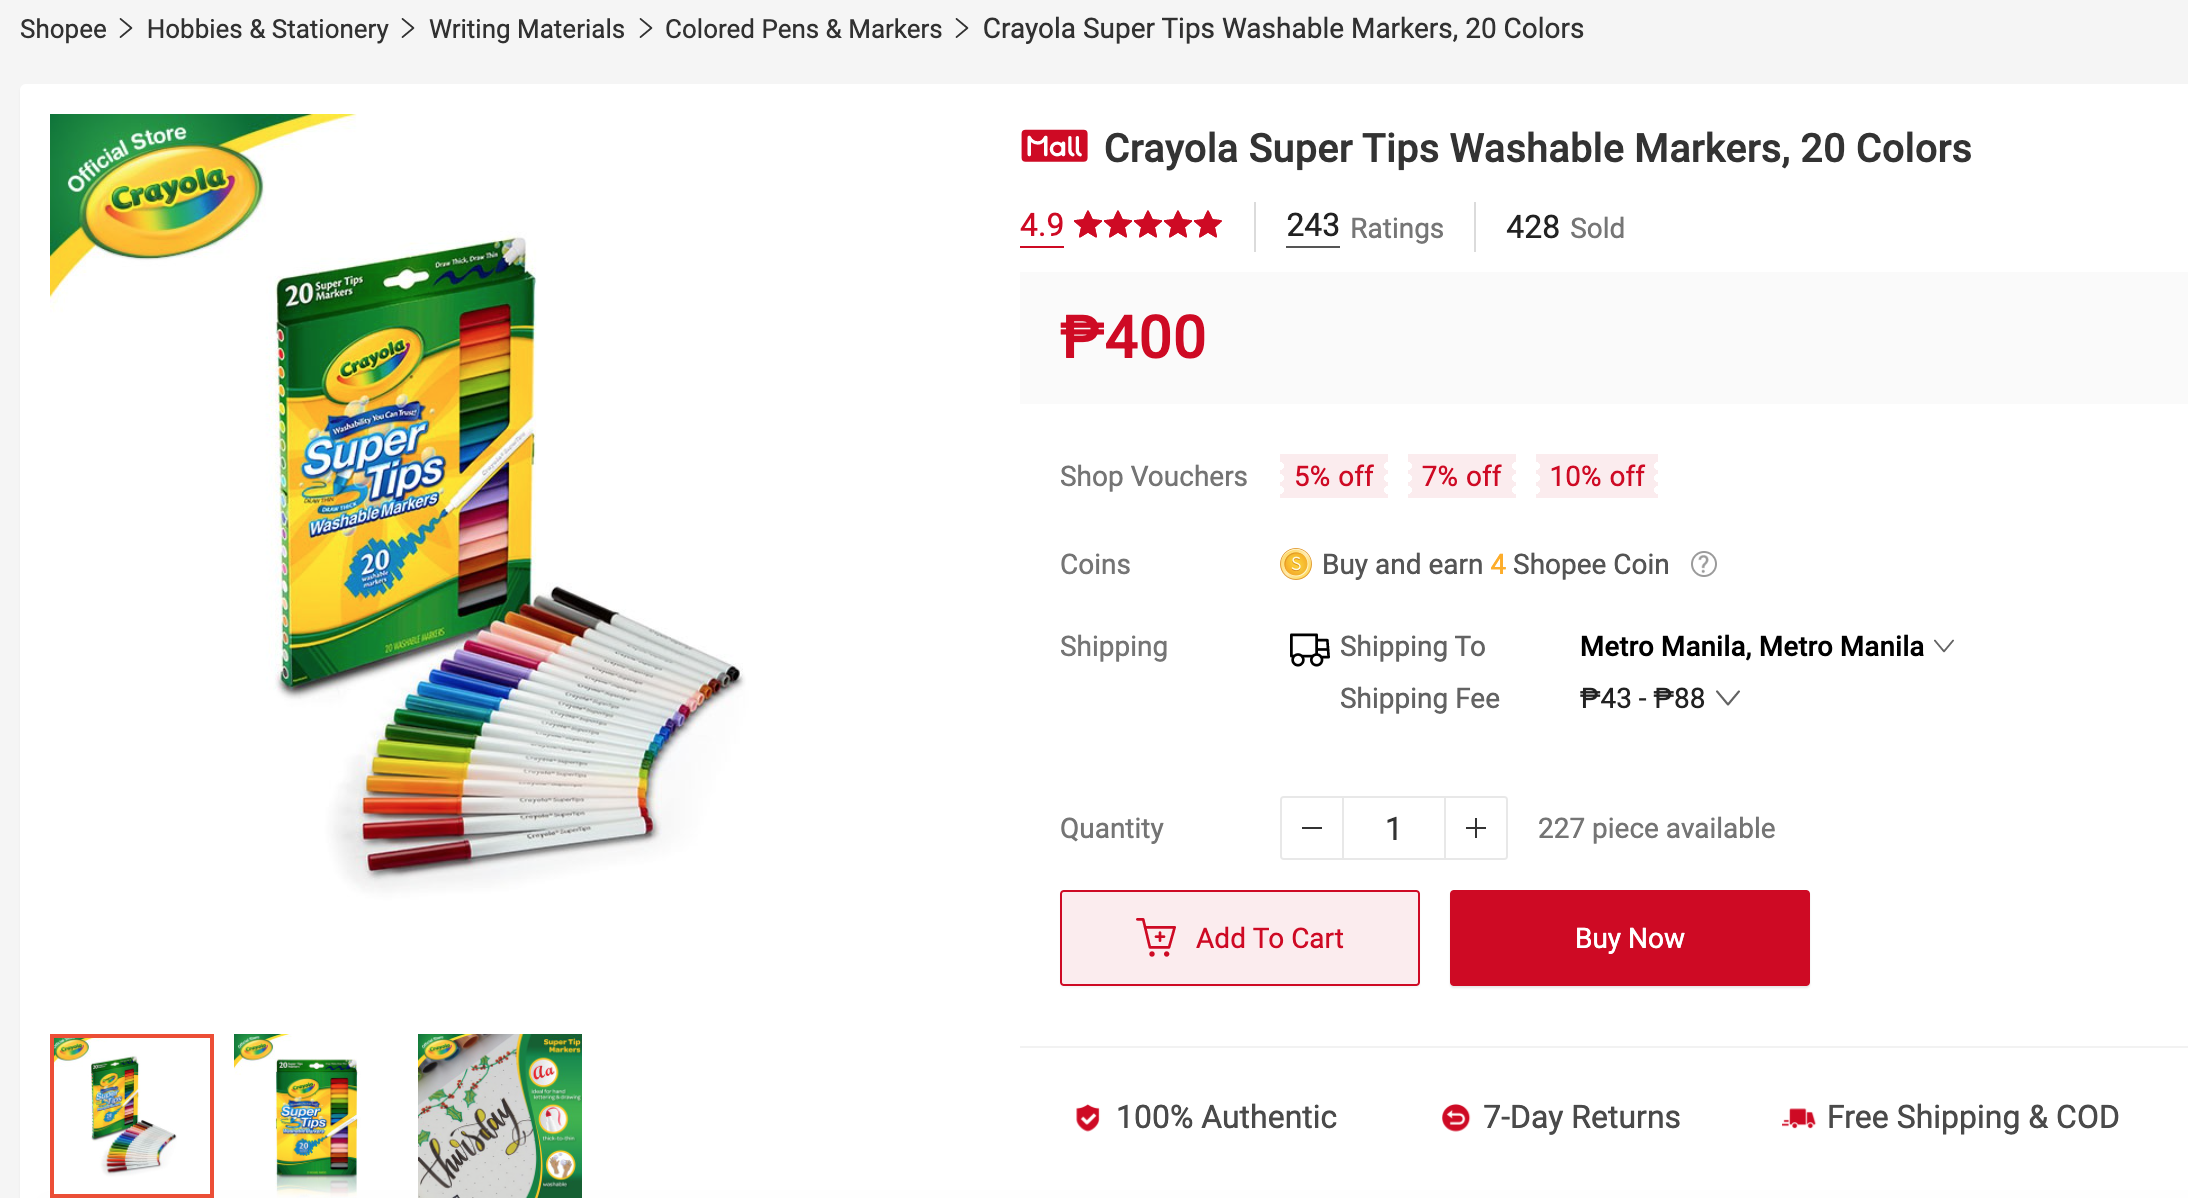 Get up to 50% off on Crayola's grand launch from October 26-November 1 on Shopee